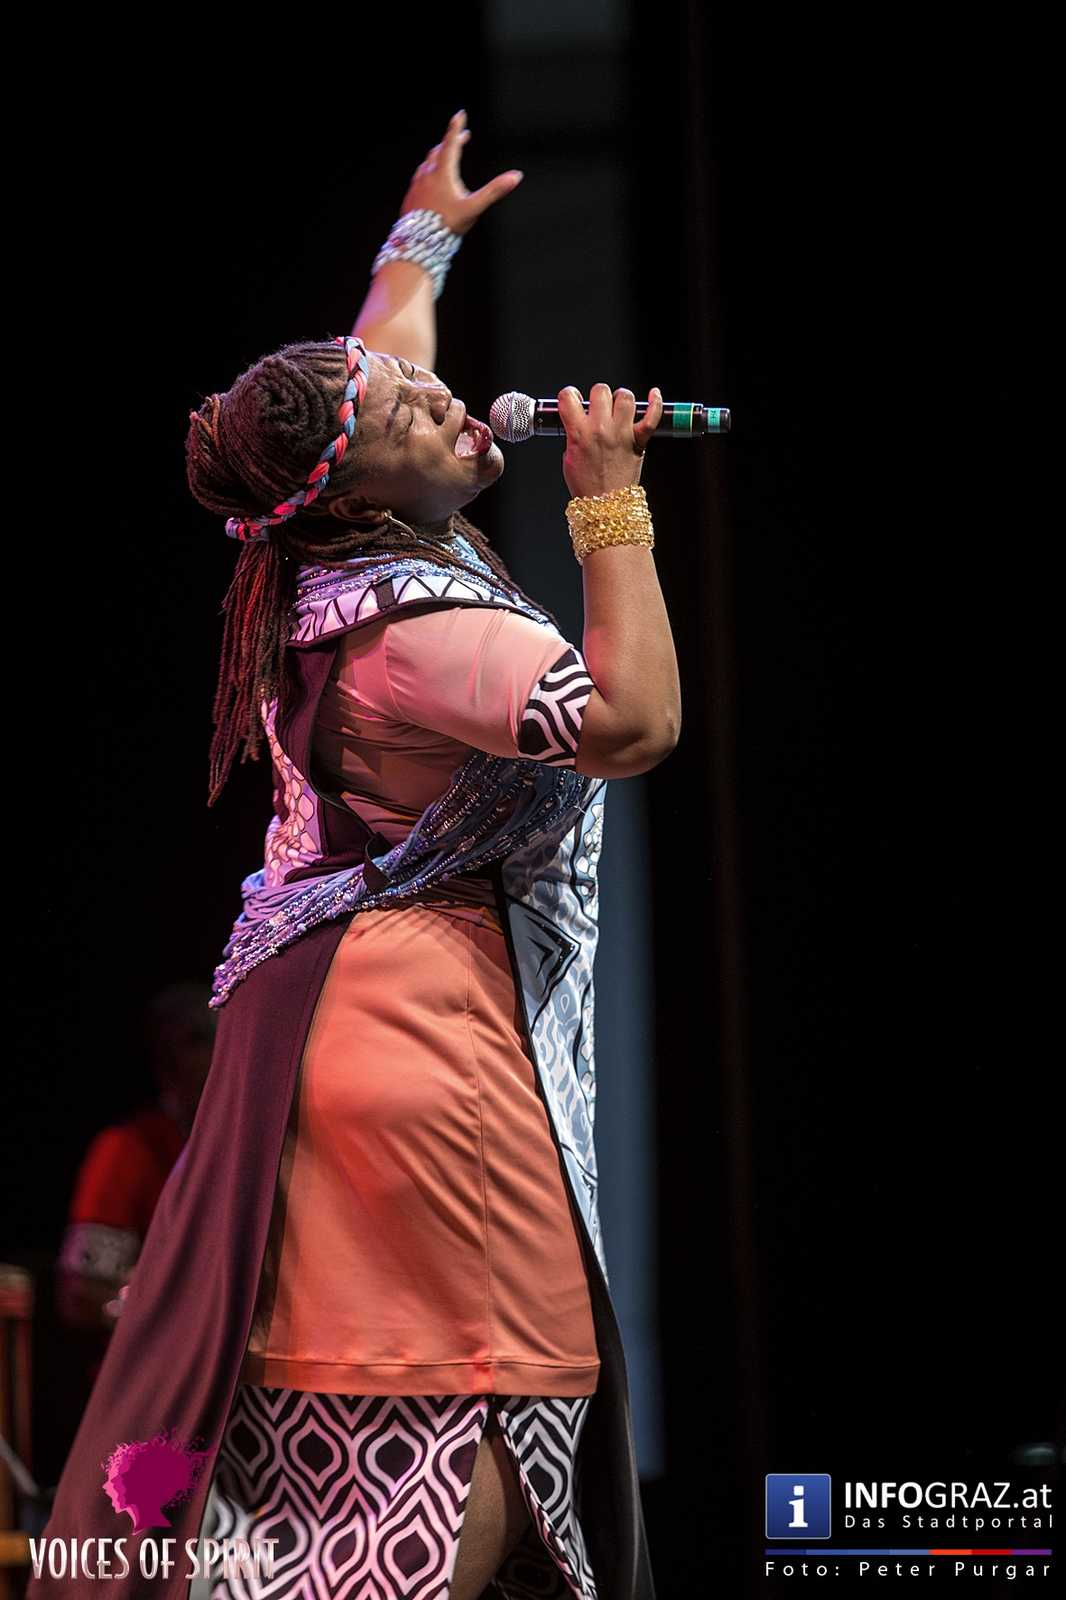 soweto gospel choir internationales chorfestival statdthalle graz voices of spirit eroeffnung festivals 2016 111